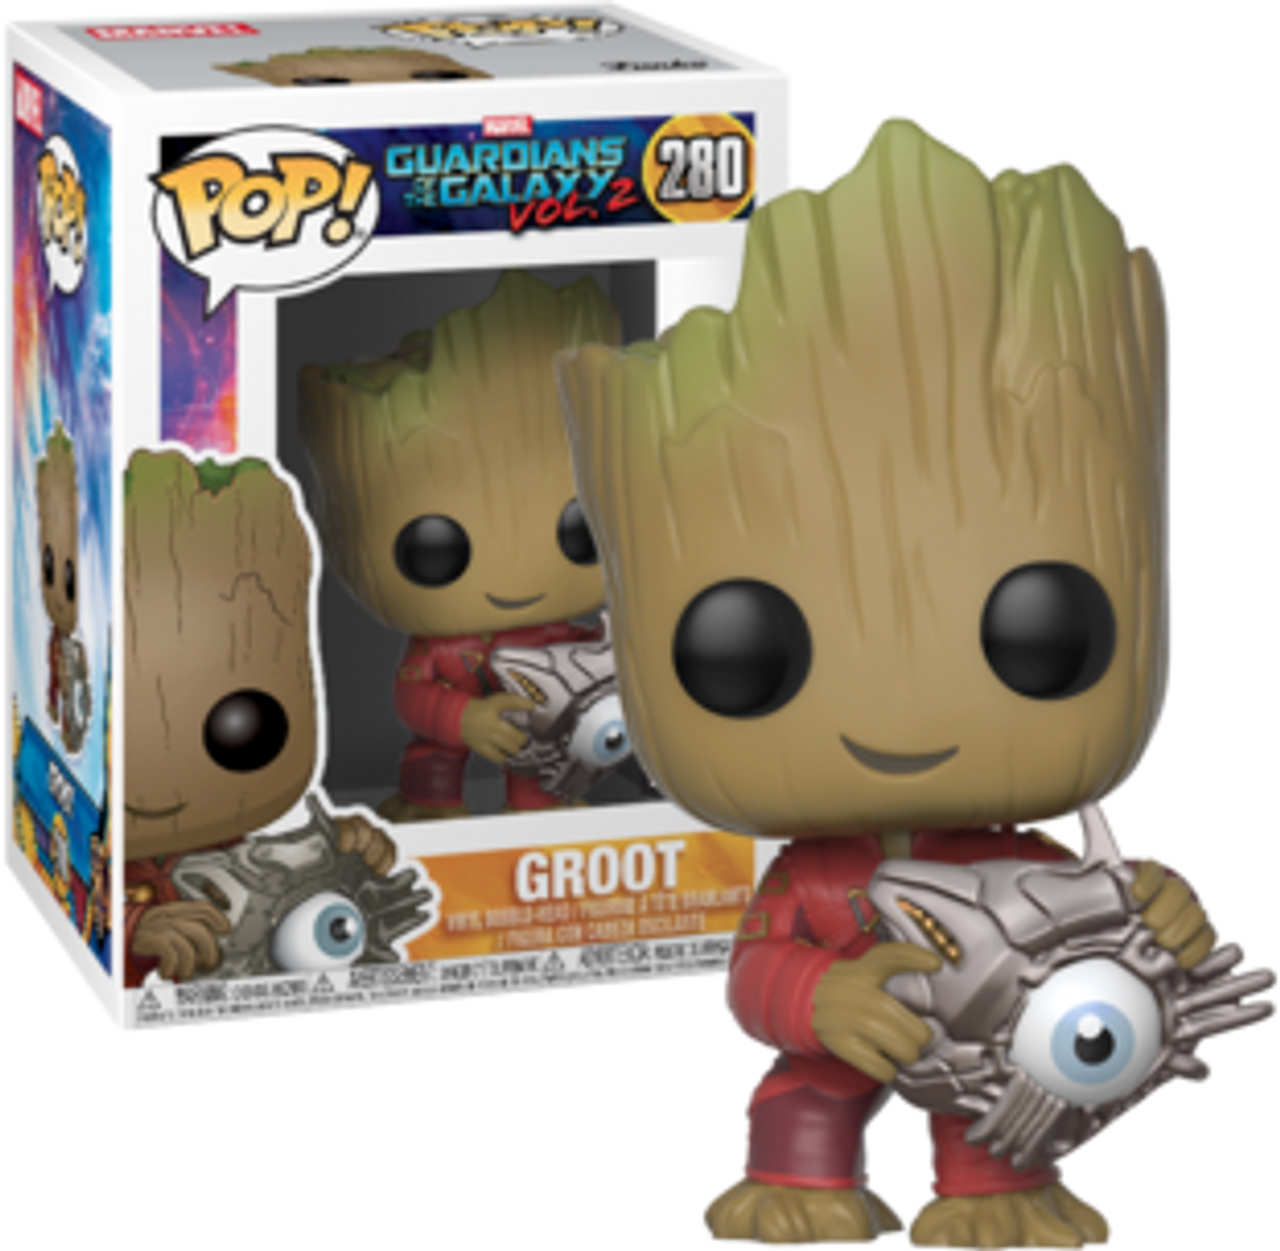 2 Viny... Guardians of the Galaxy: Vol Groot with Cyber Eye US Exclusive Pop